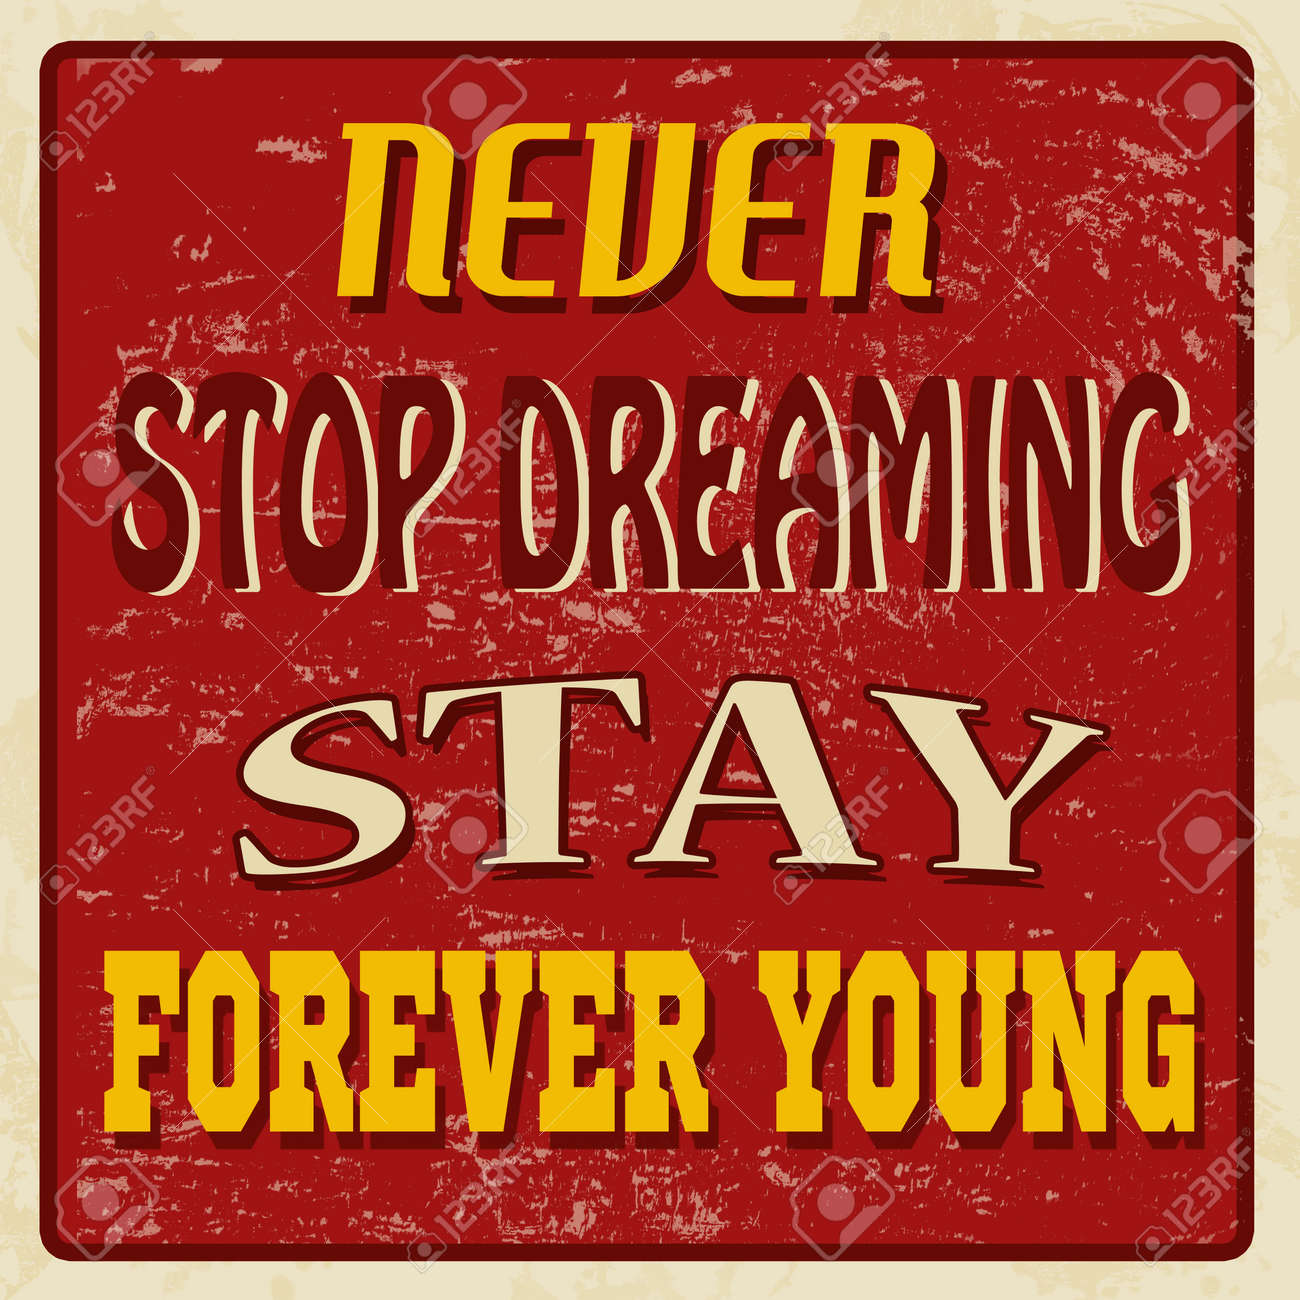 Never stop dreaming stay forever young, vintage grunge poster, vector illustrator Stock Vector - 22509579